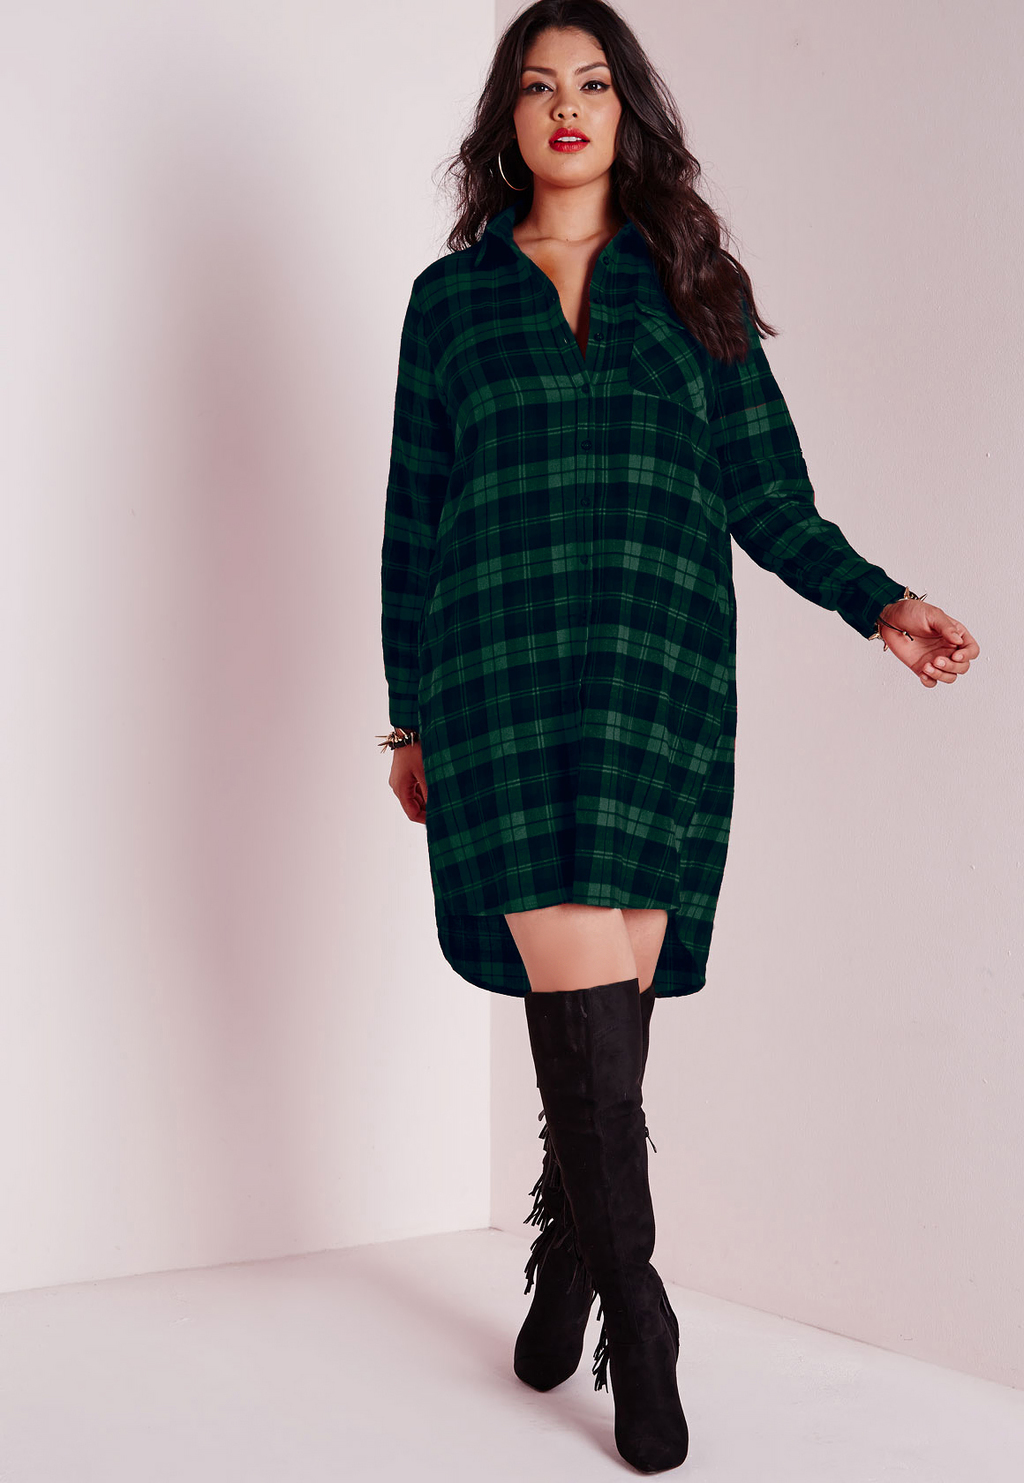 Plus Size Checked Shirt Dress Green, Green - style: shirt; length: mid thigh; neckline: shirt collar/peter pan/zip with opening; fit: loose; pattern: checked/gingham; bust detail: buttons at bust (in middle at breastbone)/zip detail at bust; secondary colour: navy; predominant colour: dark green; occasions: casual, creative work; fibres: viscose/rayon - 100%; sleeve length: long sleeve; sleeve style: standard; texture group: cotton feel fabrics; pattern type: fabric; pattern size: big & busy; season: a/w 2015; wardrobe: highlight